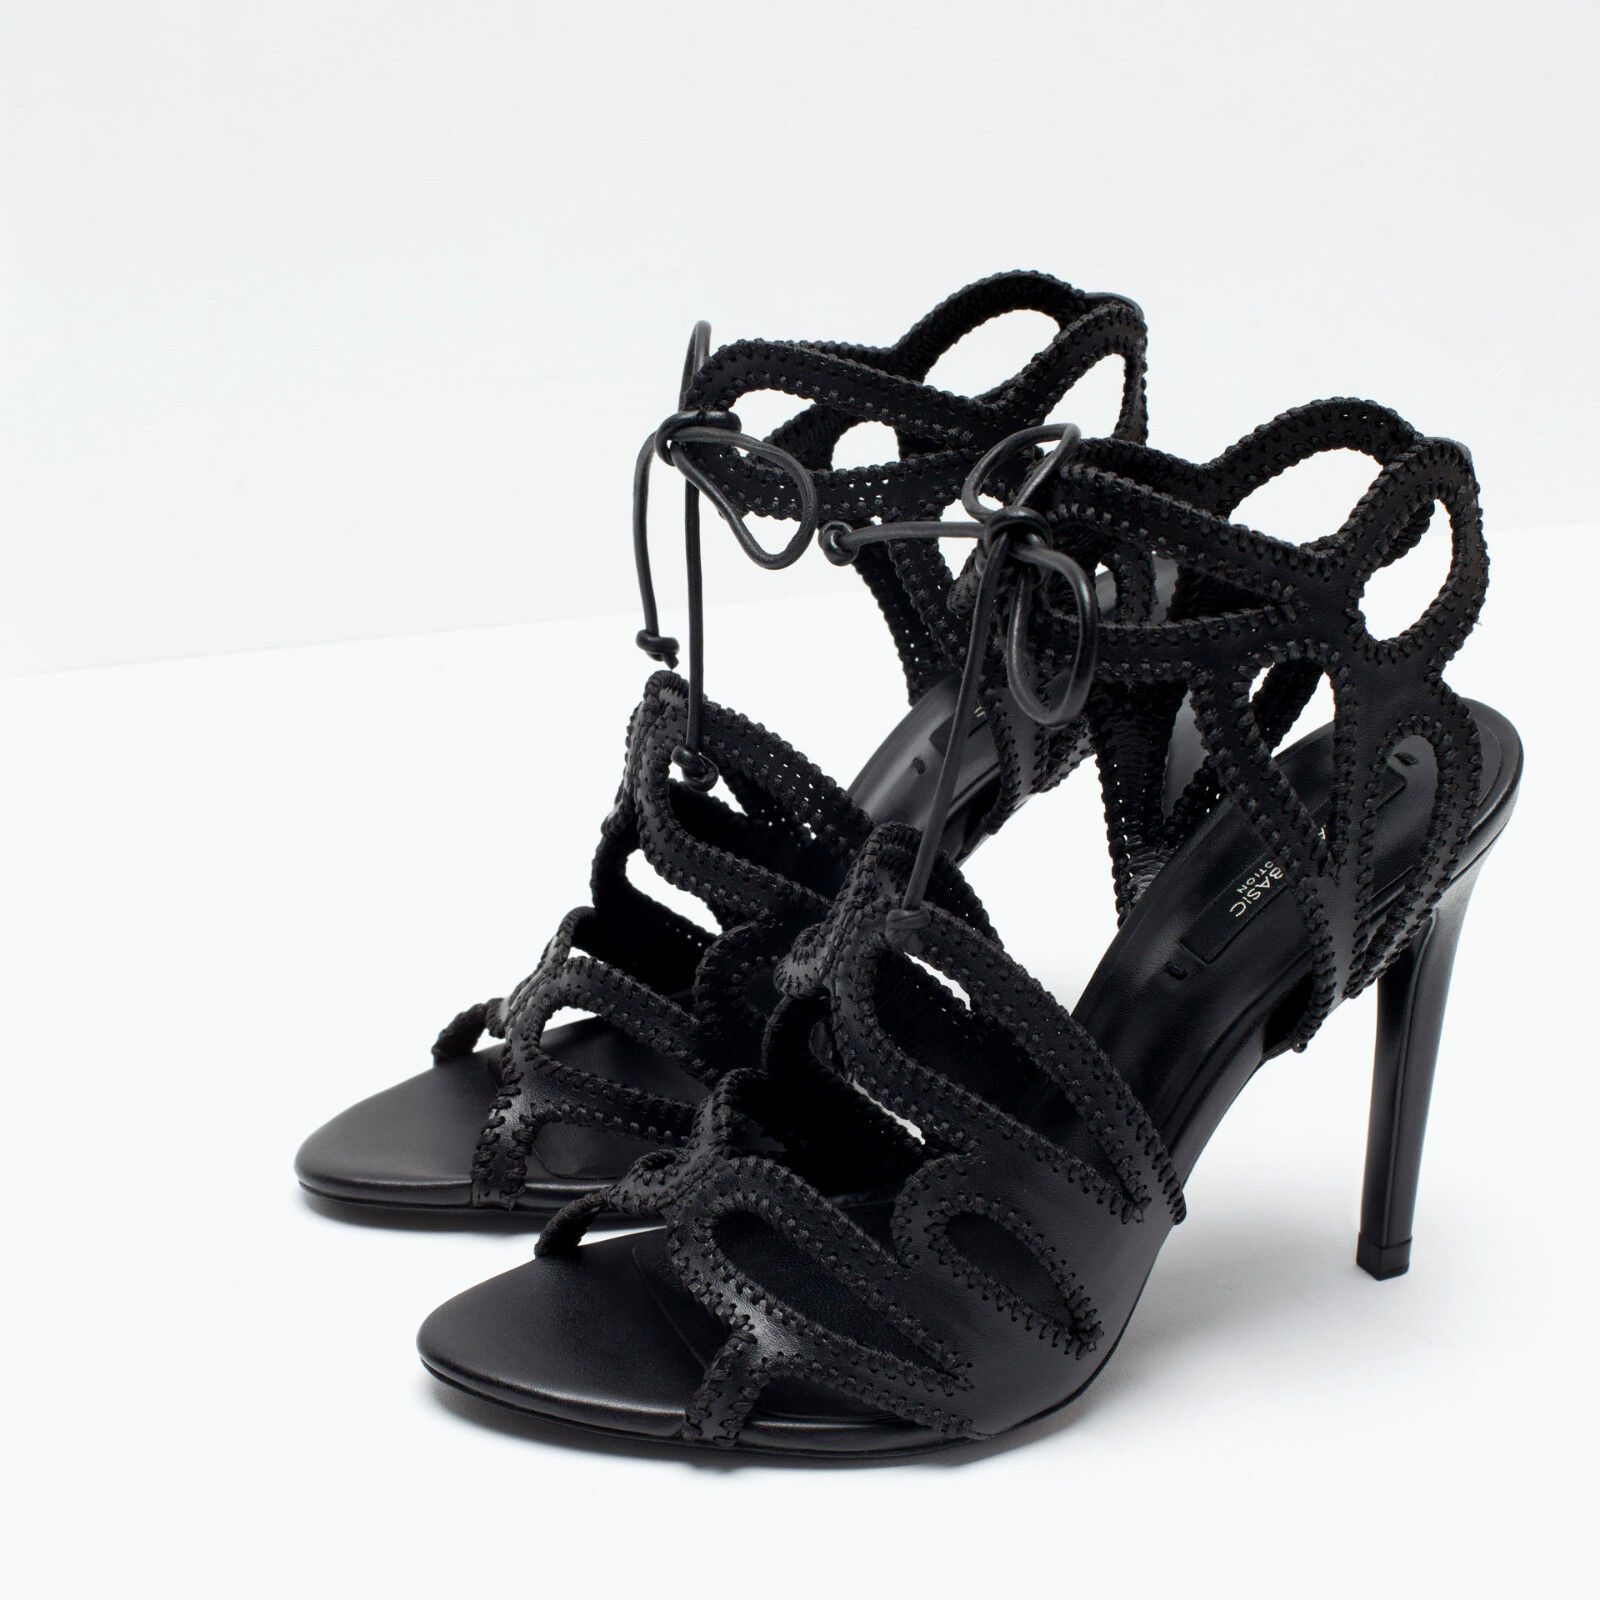 ZARA BLOGGERS BLACK CUTOUT HIGH ALL HEEL LACE UP SANDALS ALL HIGH SIZES e1c9d1